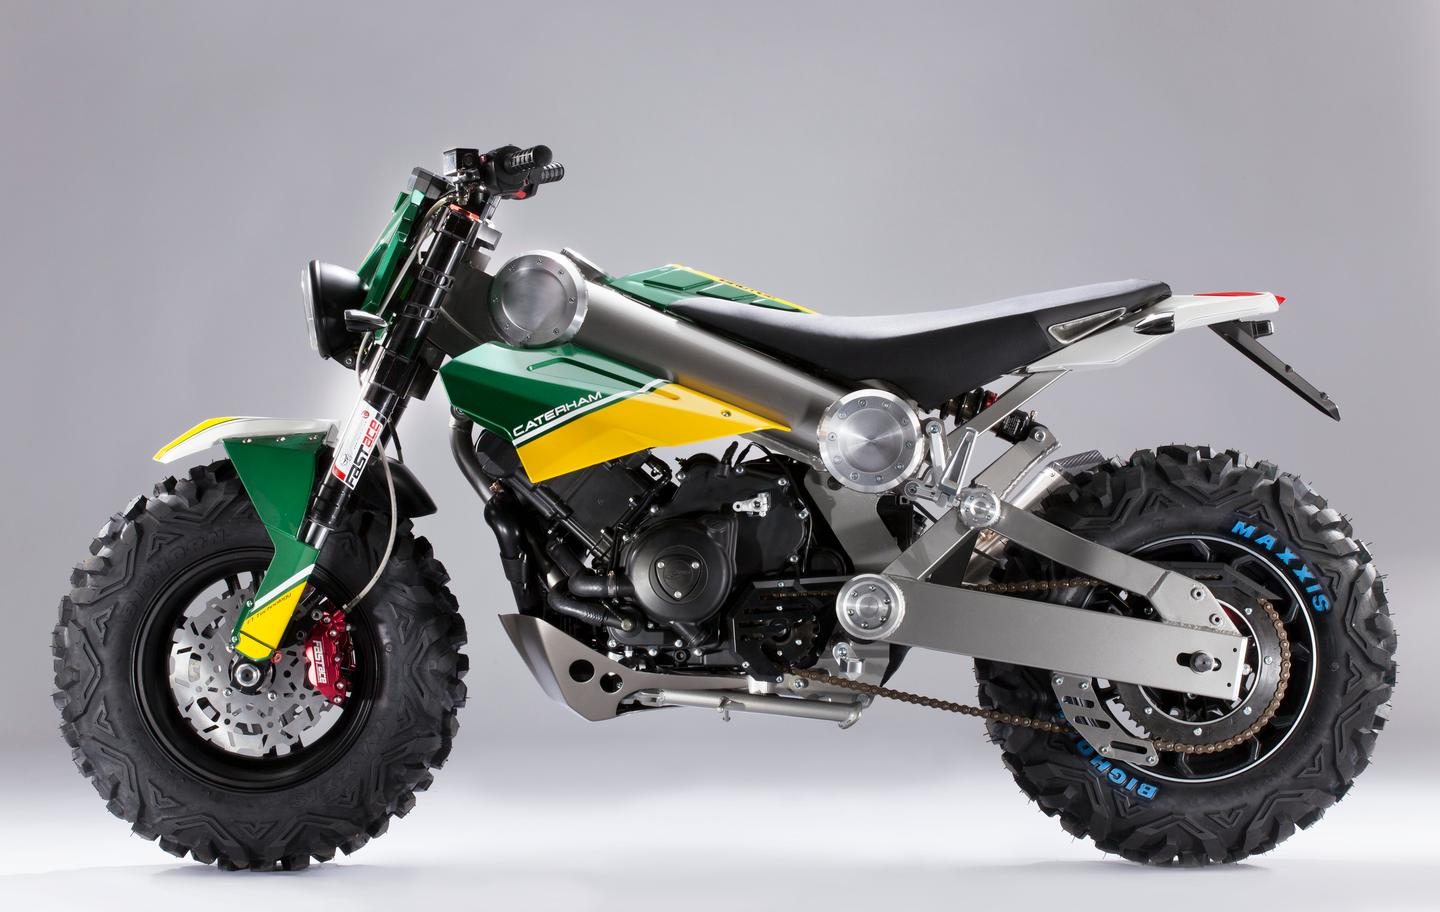 Brutus 750 is powered by a 750 cc single-cylinder engine, with liquid-cooling, DOHC, 4 valves and an automatic CVT transmission